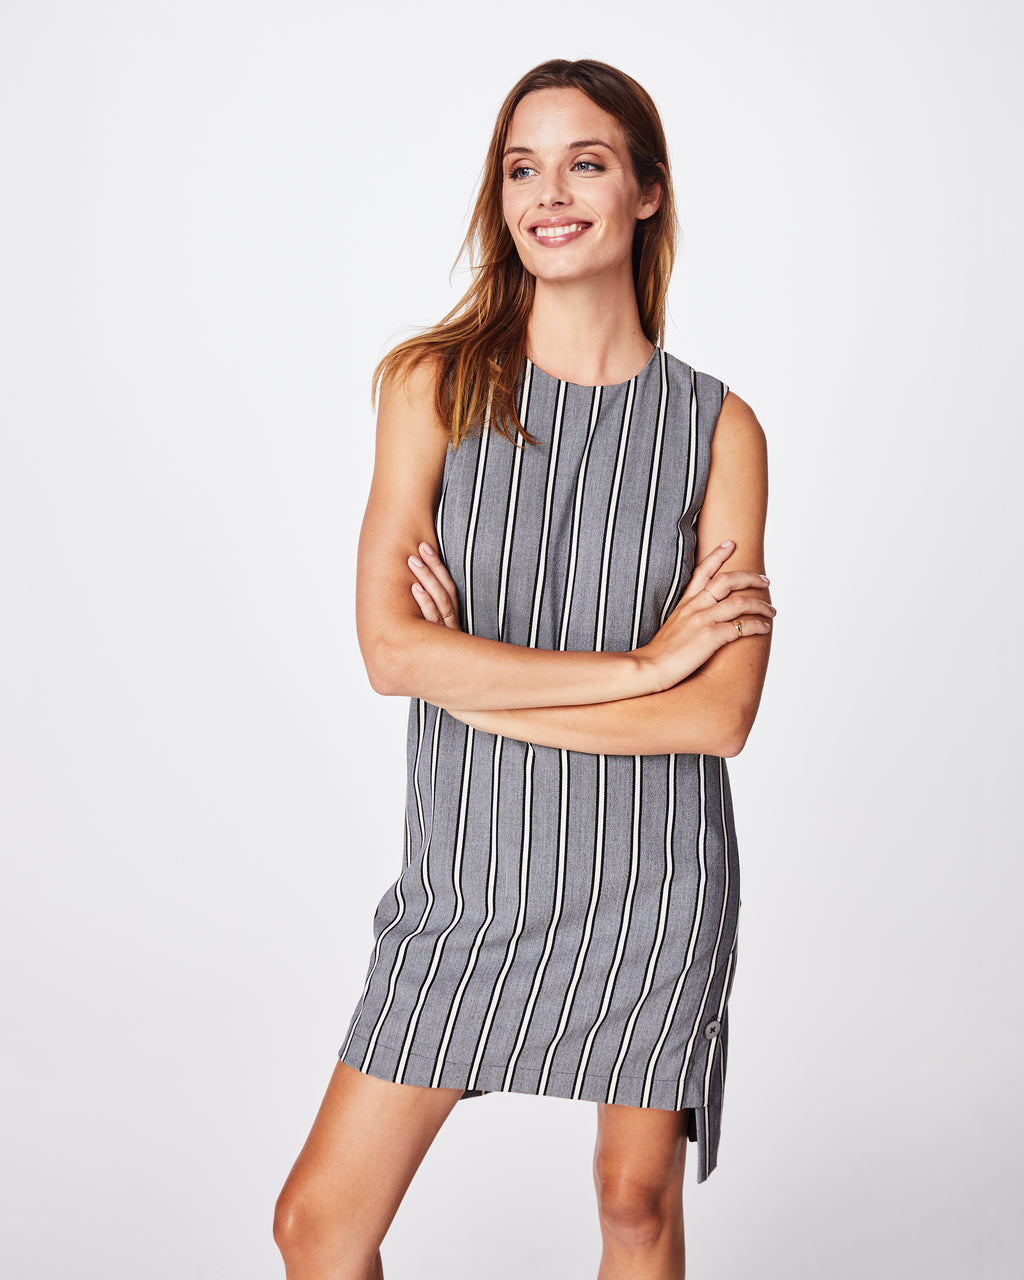 BQ10340 - STRETCH WOVEN STRIPE SHIFT DRESS - dresses - short - Dressy enough for work, but casual enough for the weekend. This stretch woven shift dress is comfortable and a little longer in the back.